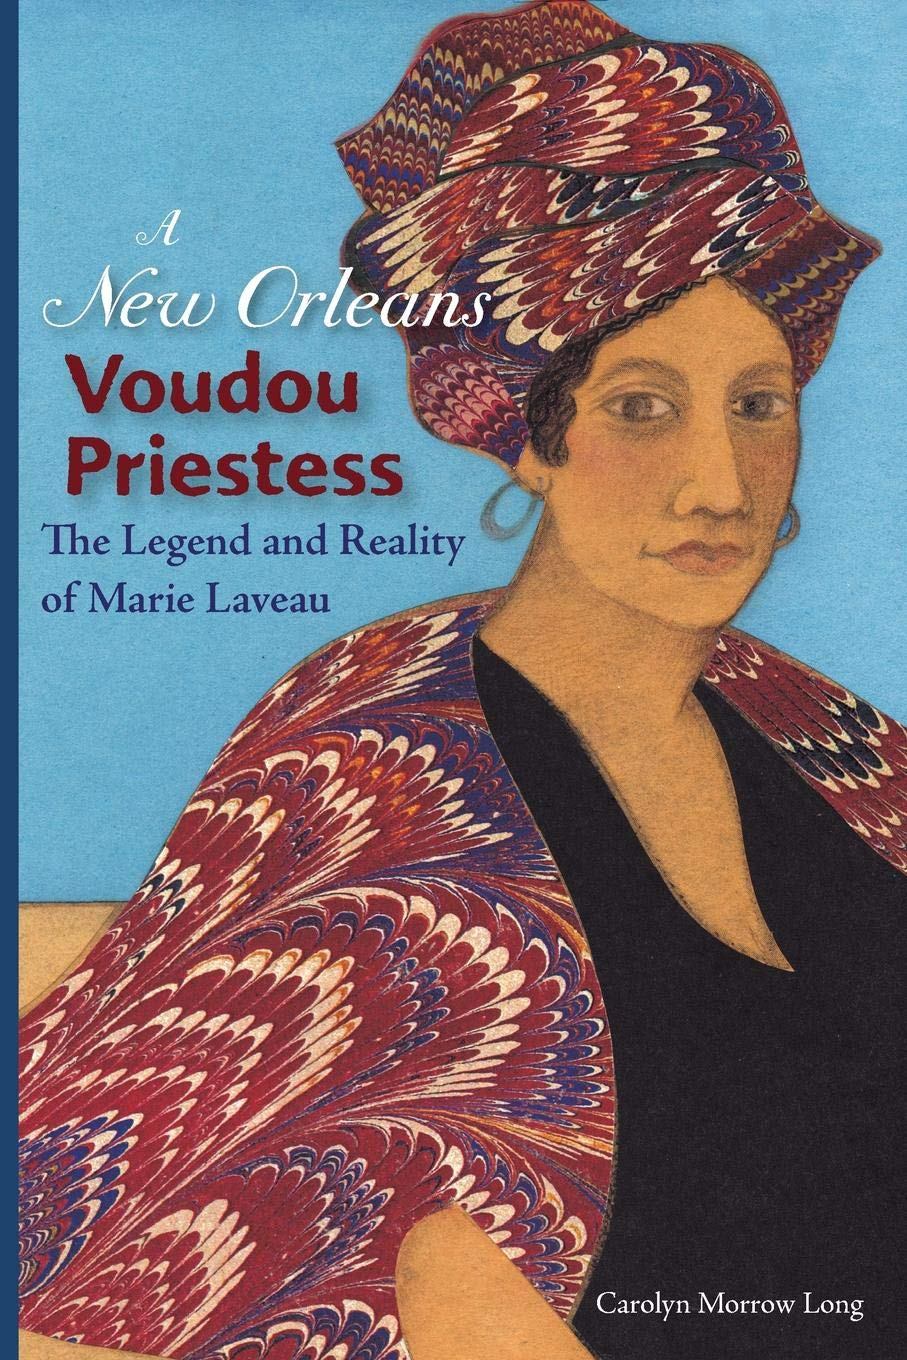 A New Orleans Voudou Priestess: The Legend and Reality of Marie Laveau por Carolyn Morrow Long